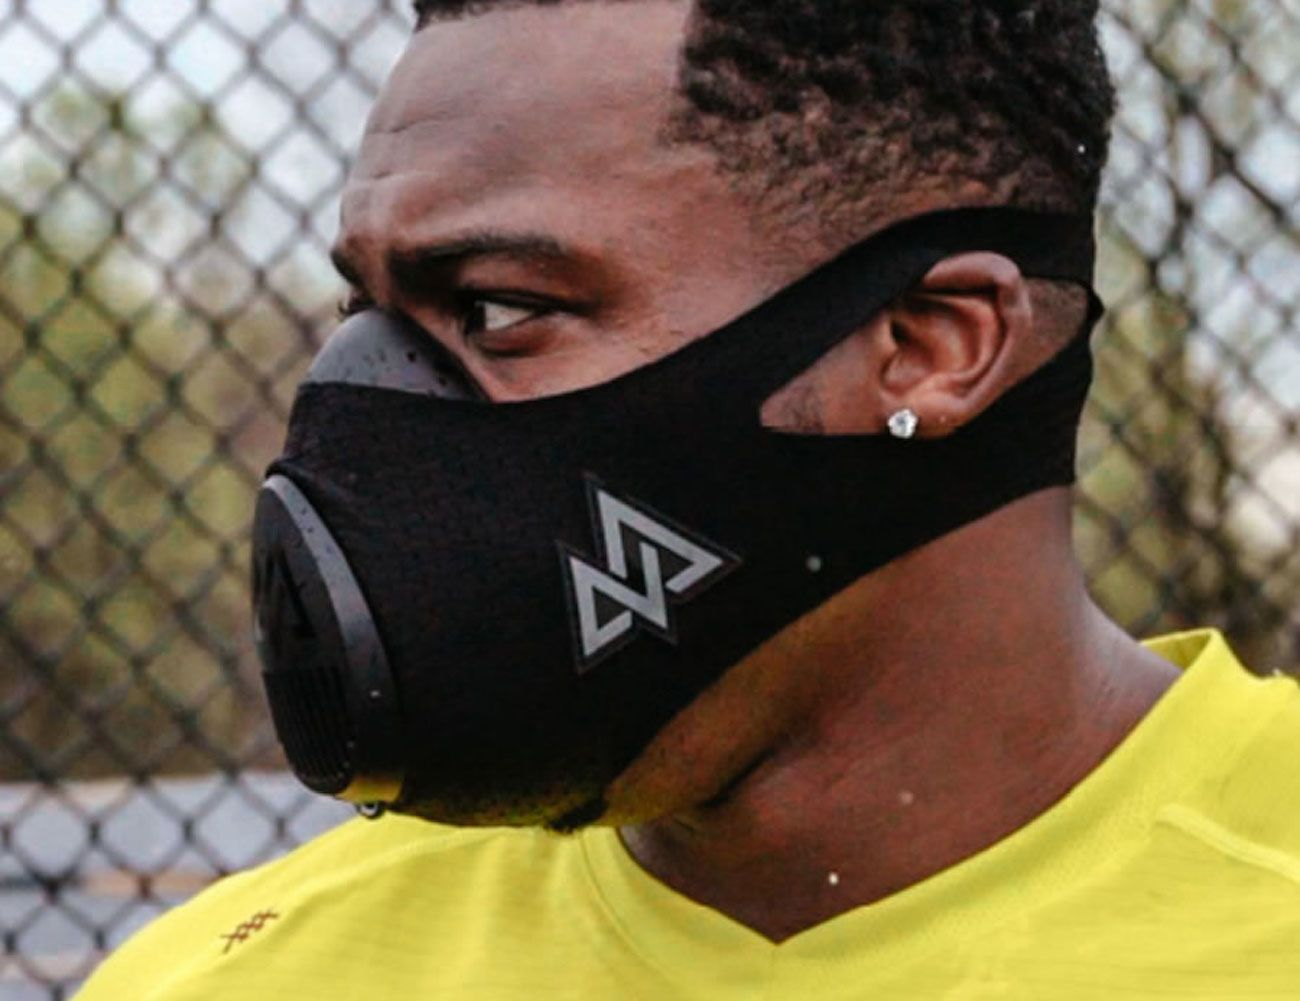 TrainingMask 3.0 Performance Breathing Trainer